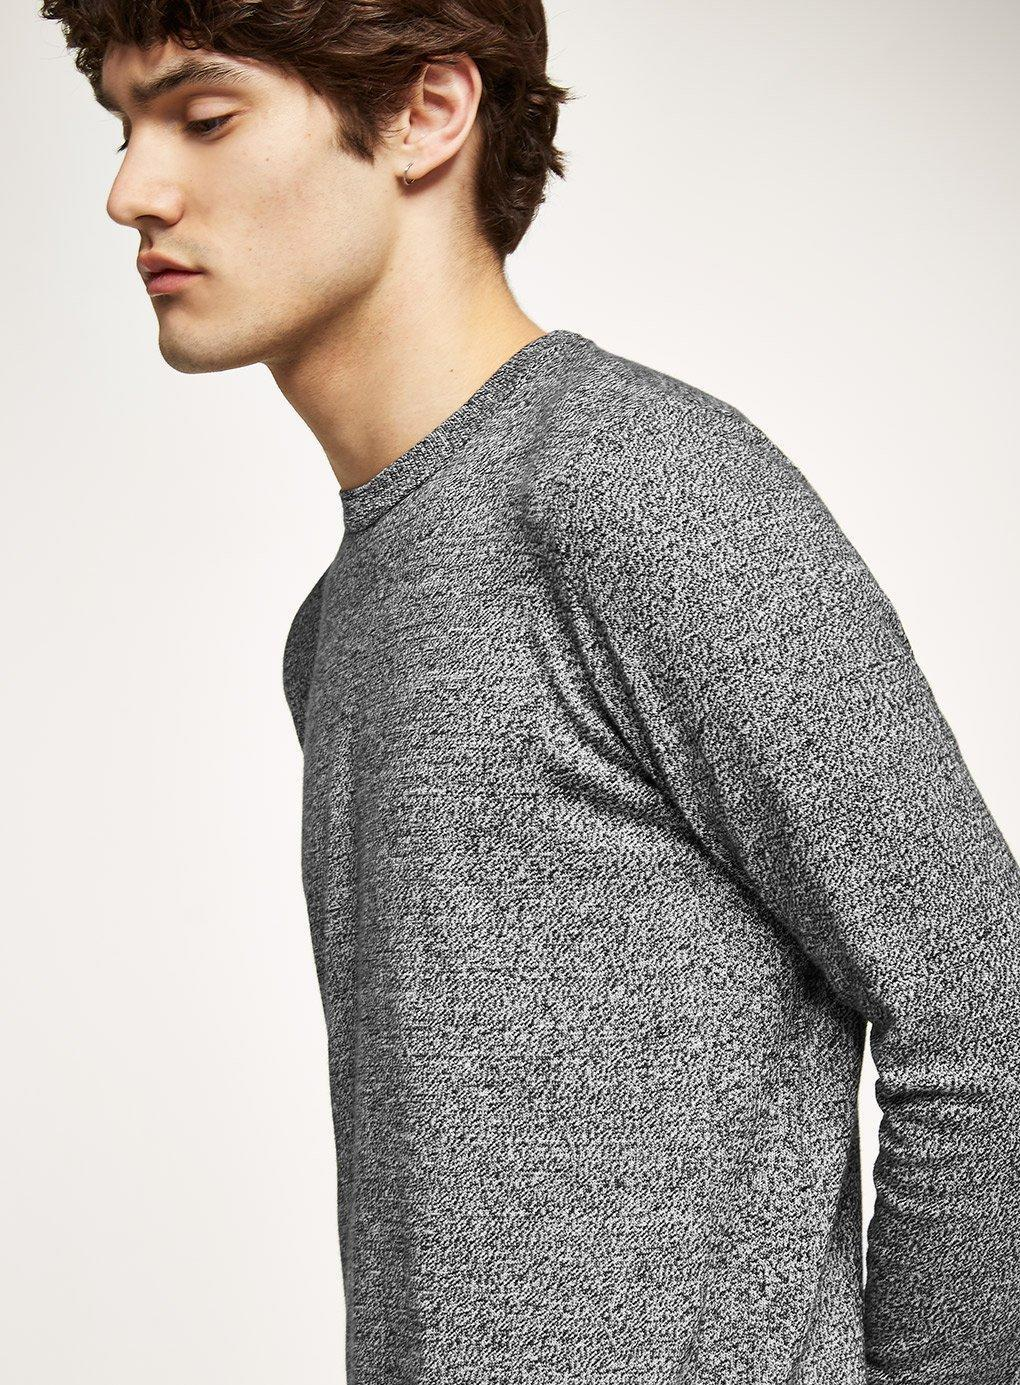 74339580cfe8 Topman - Gray Grey Black And White Twist Jumper for Men - Lyst. View  fullscreen